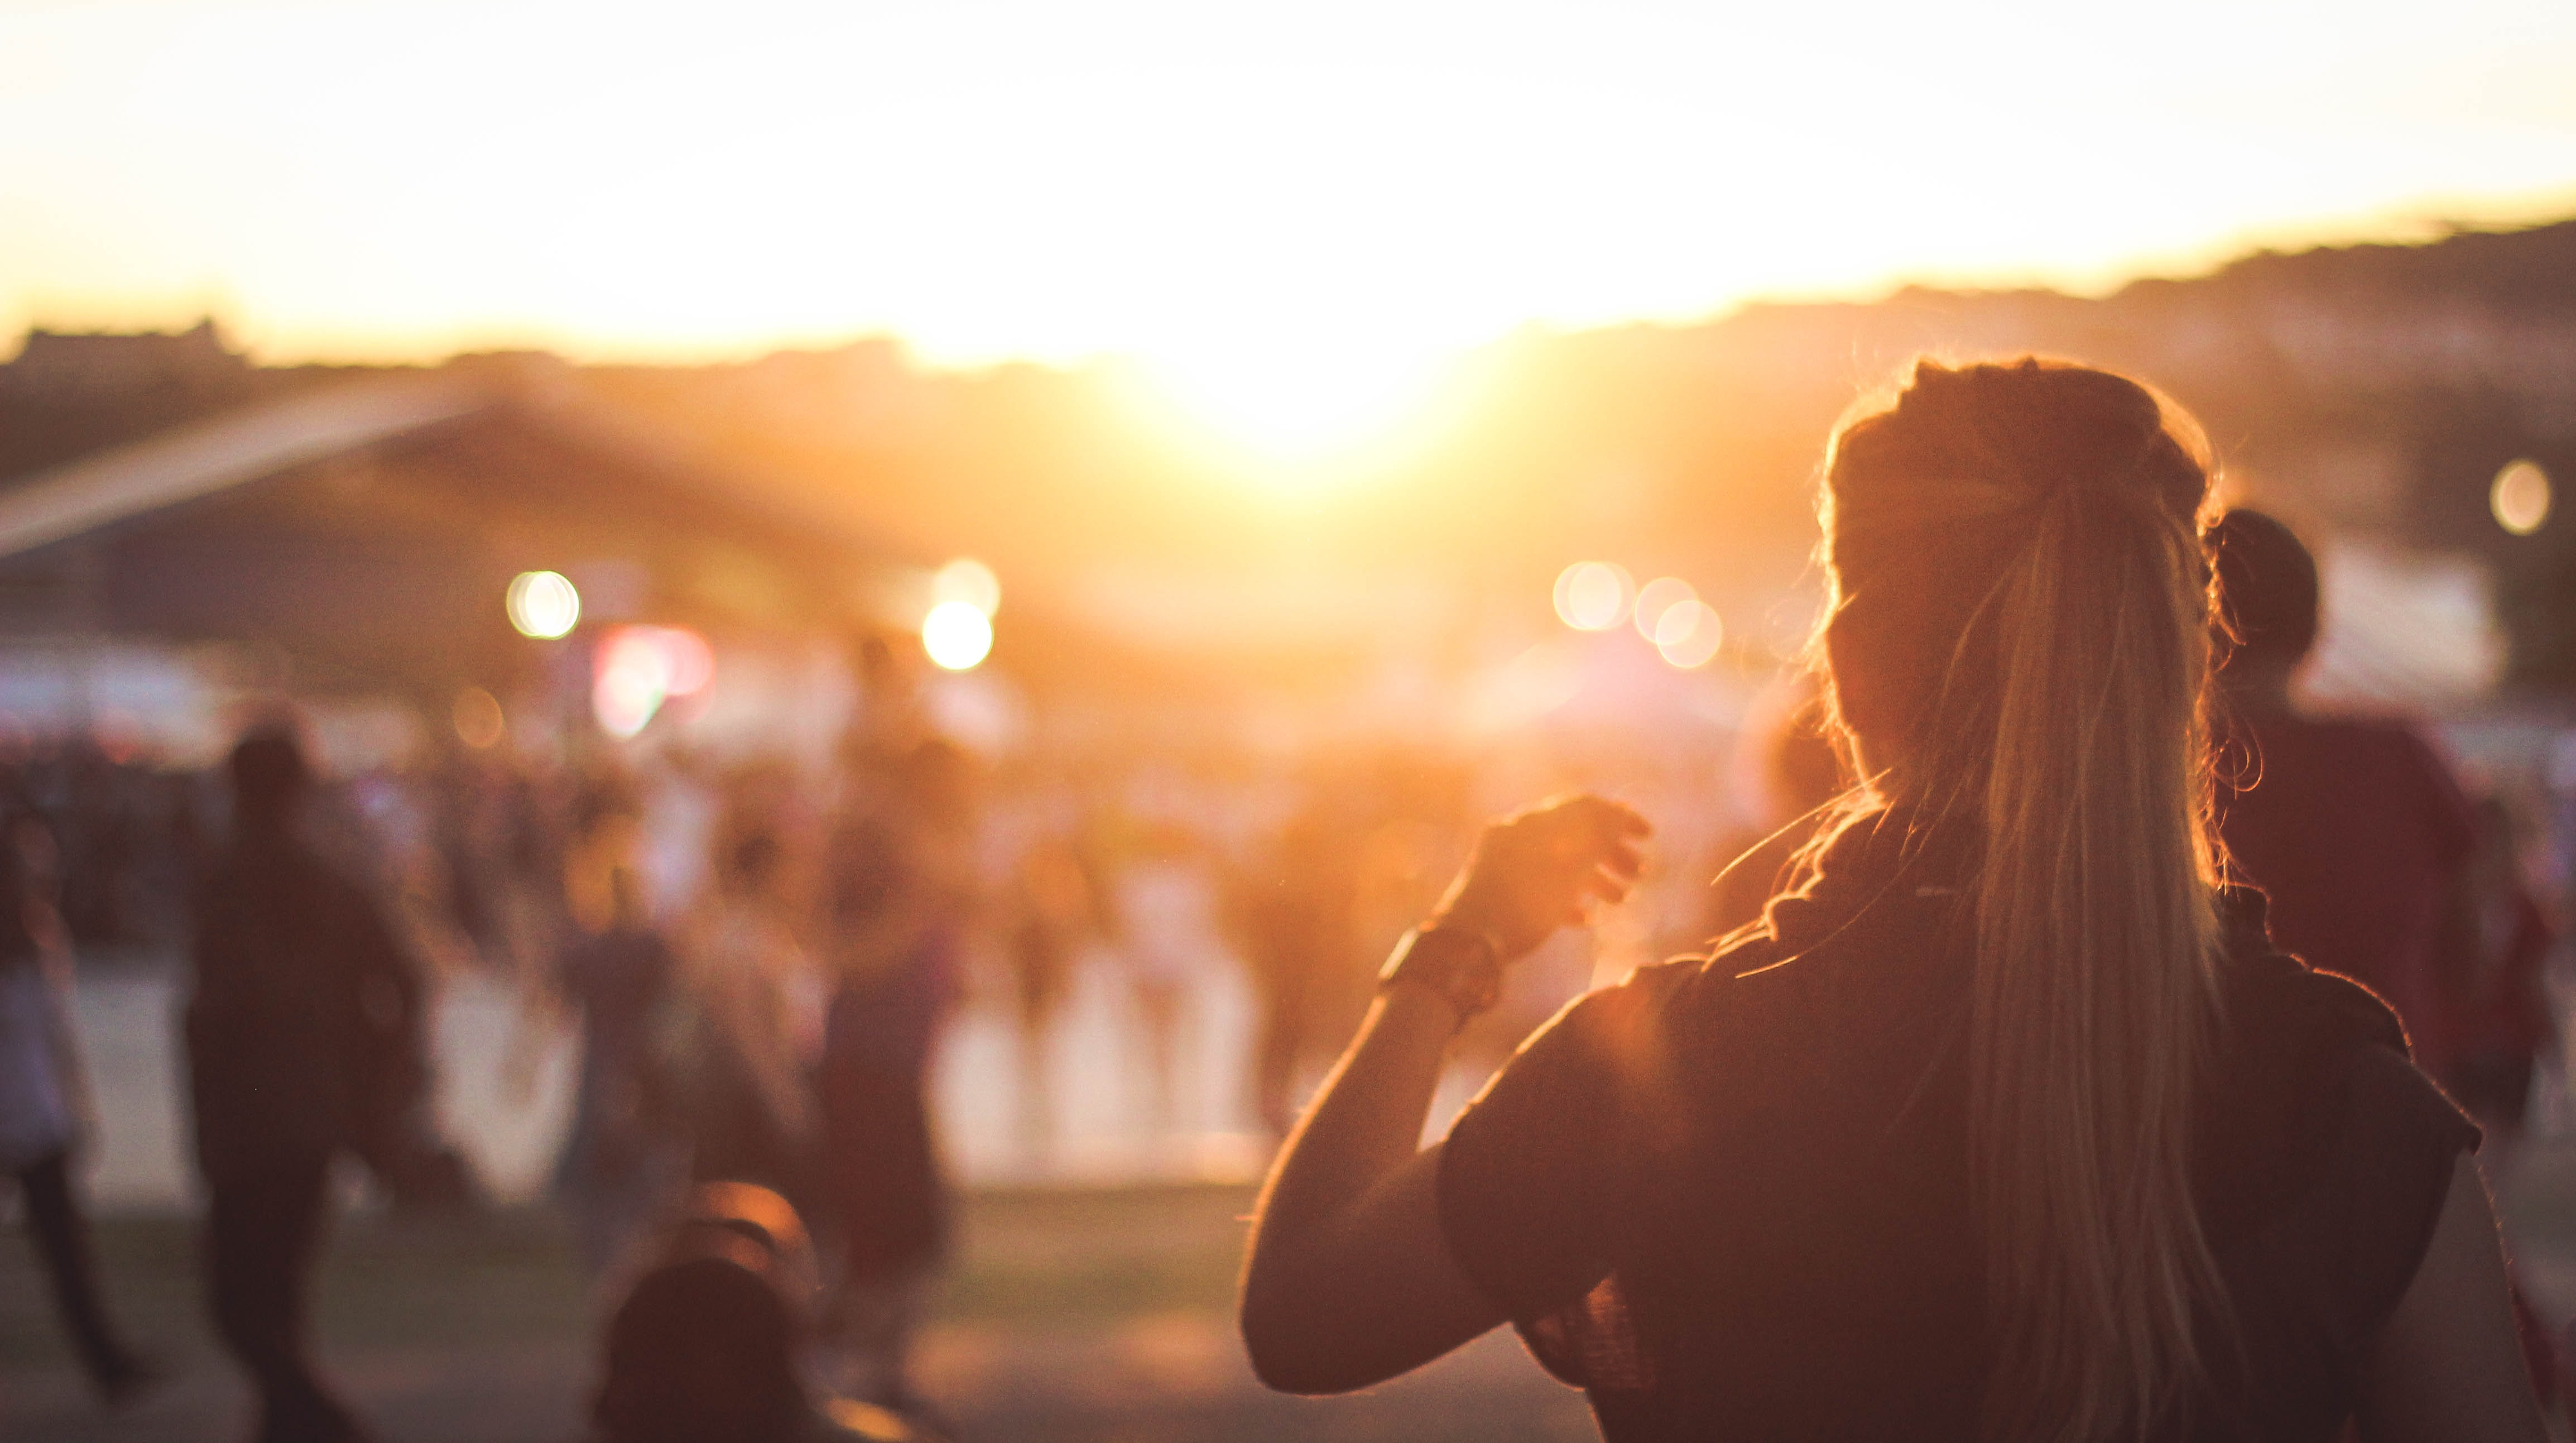 Image of a blonde woman standing in a festival with lens flares in silhouette